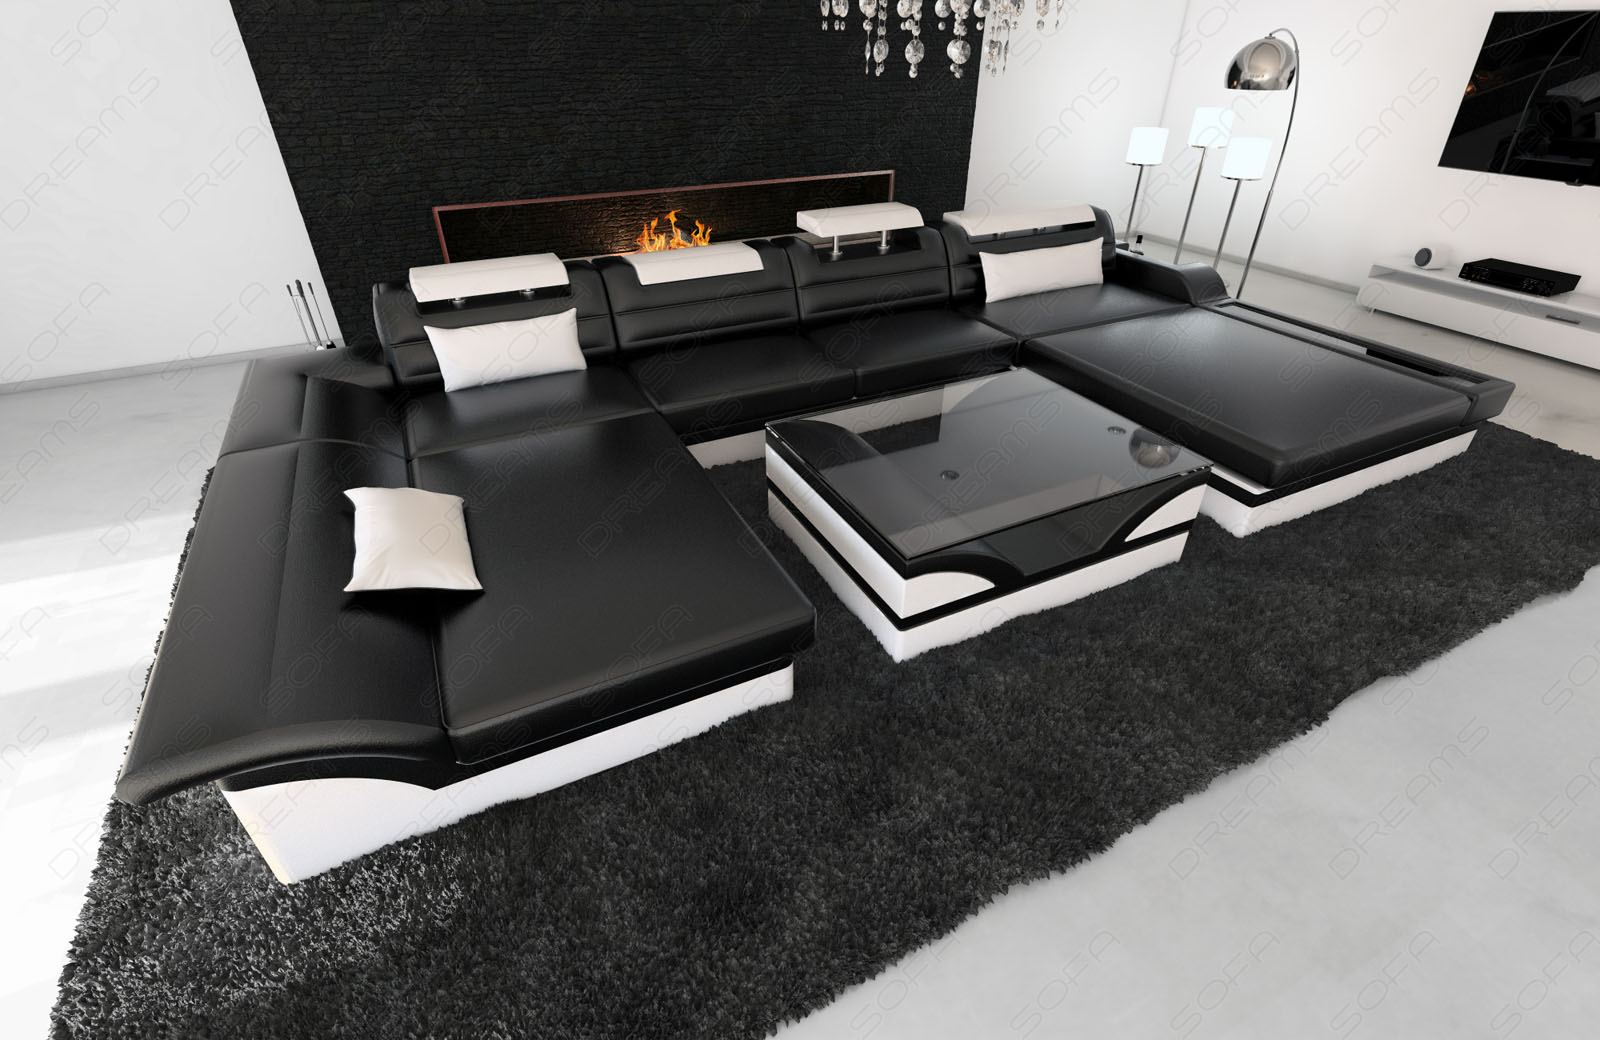 ledercouch u form ledercouch berlin in u form als. Black Bedroom Furniture Sets. Home Design Ideas